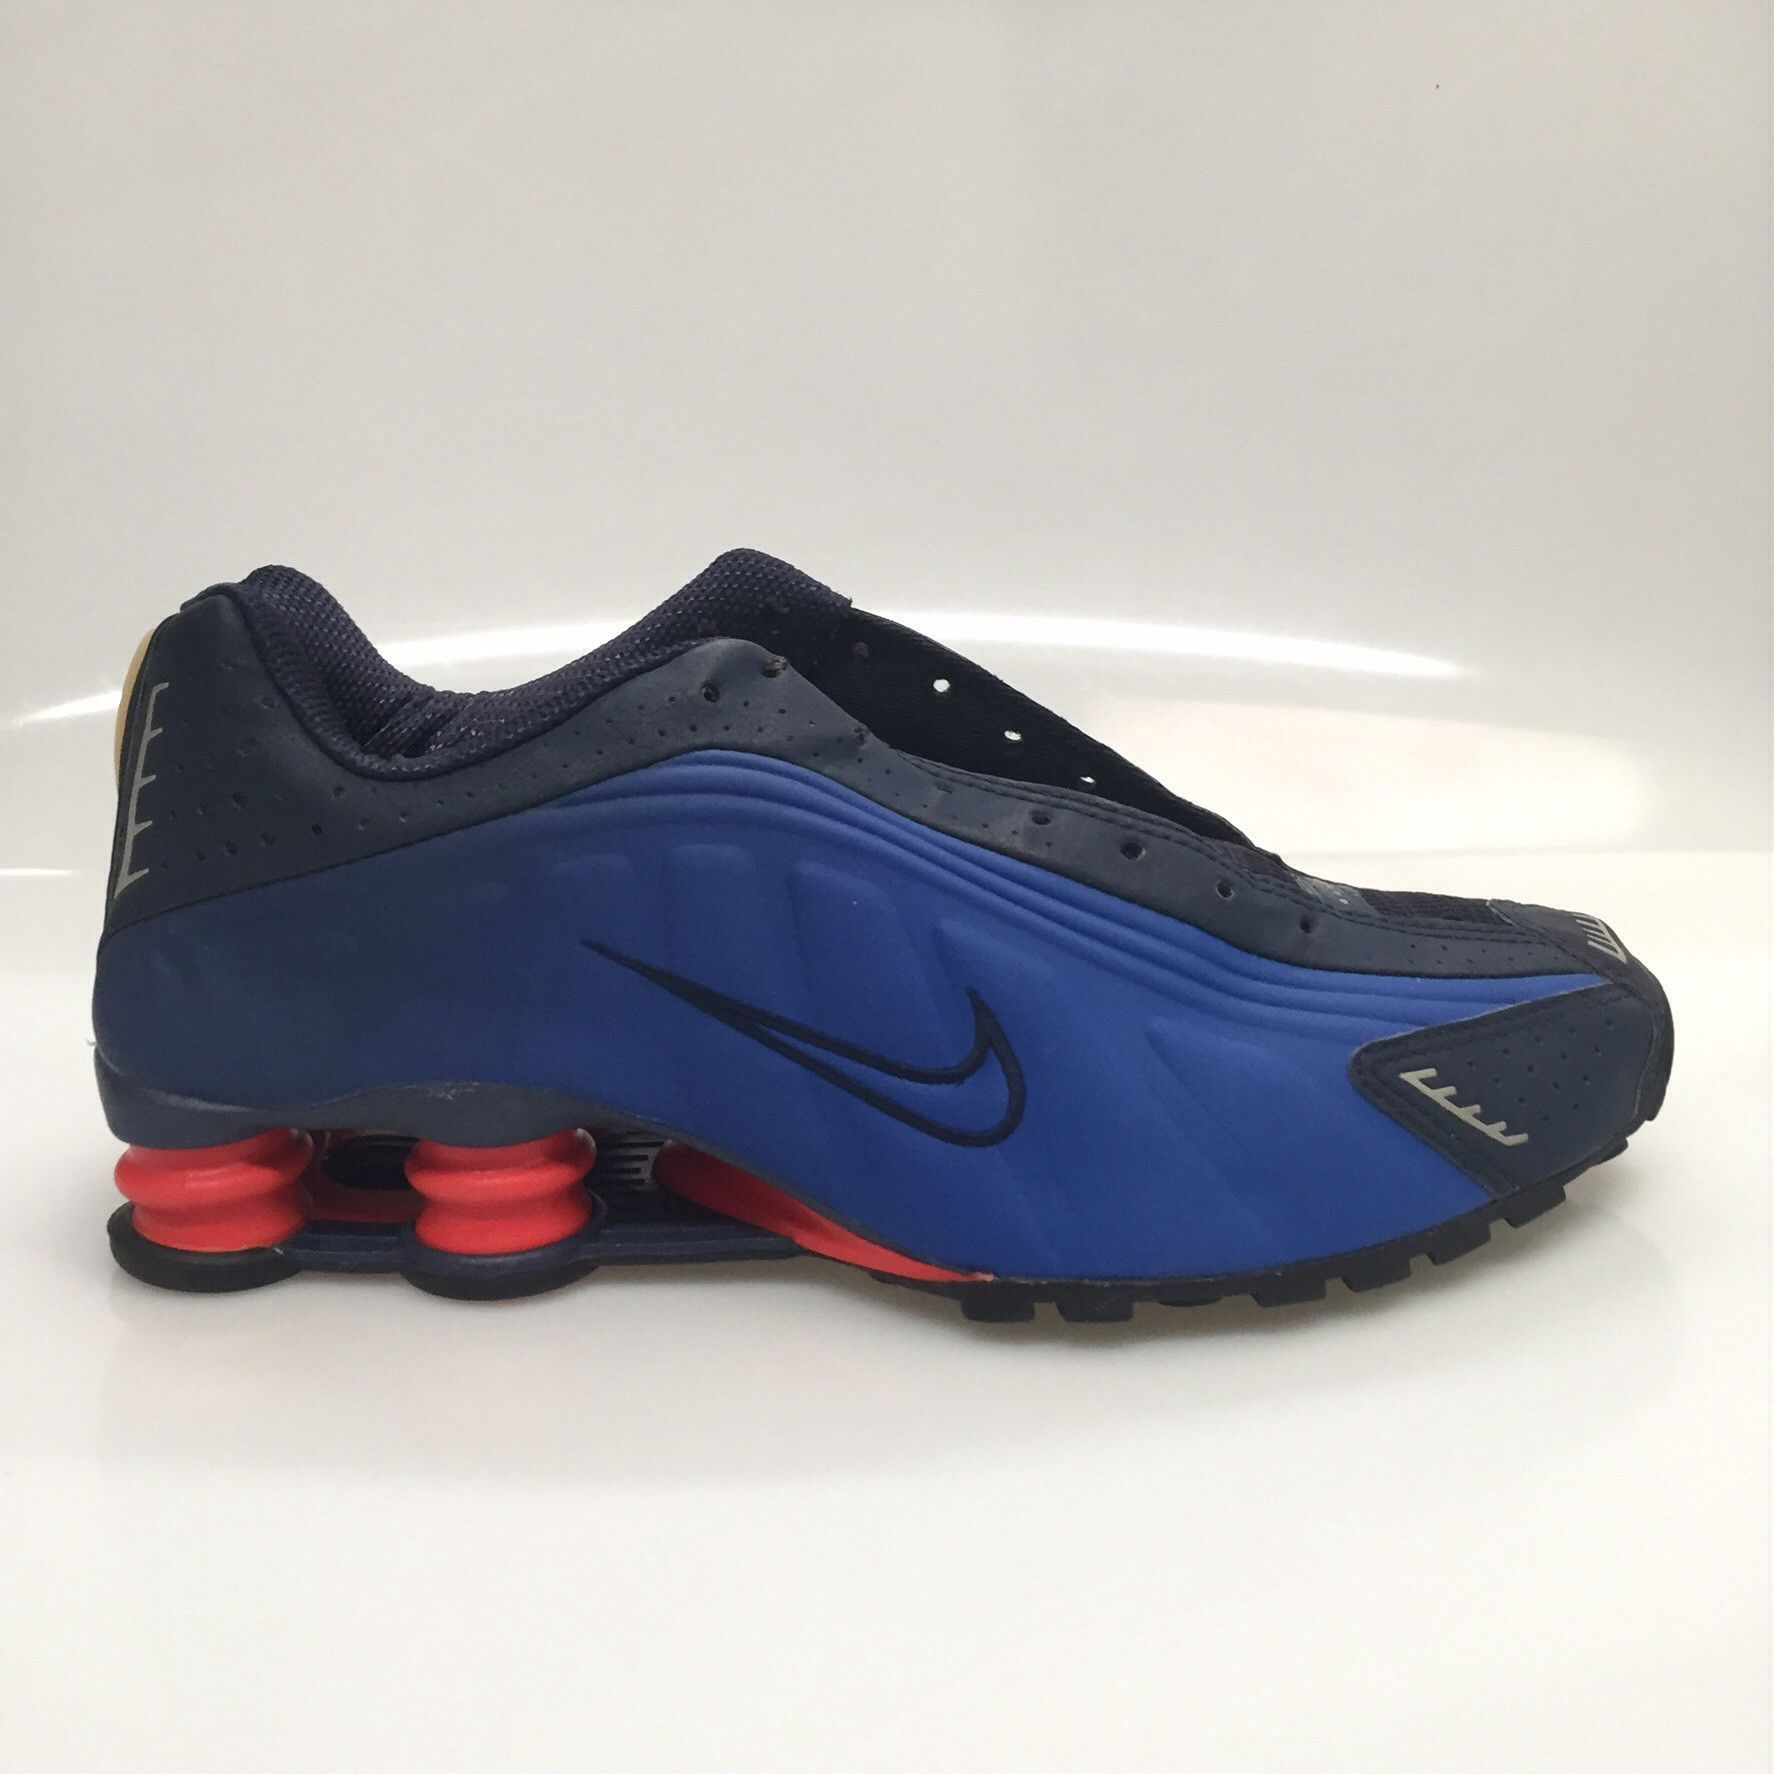 online retailer 7af8a 06fc6 CONDITION  Brand New STYLE NUMBER  104265-441 YEAR  2001 COLORWAY  Royal